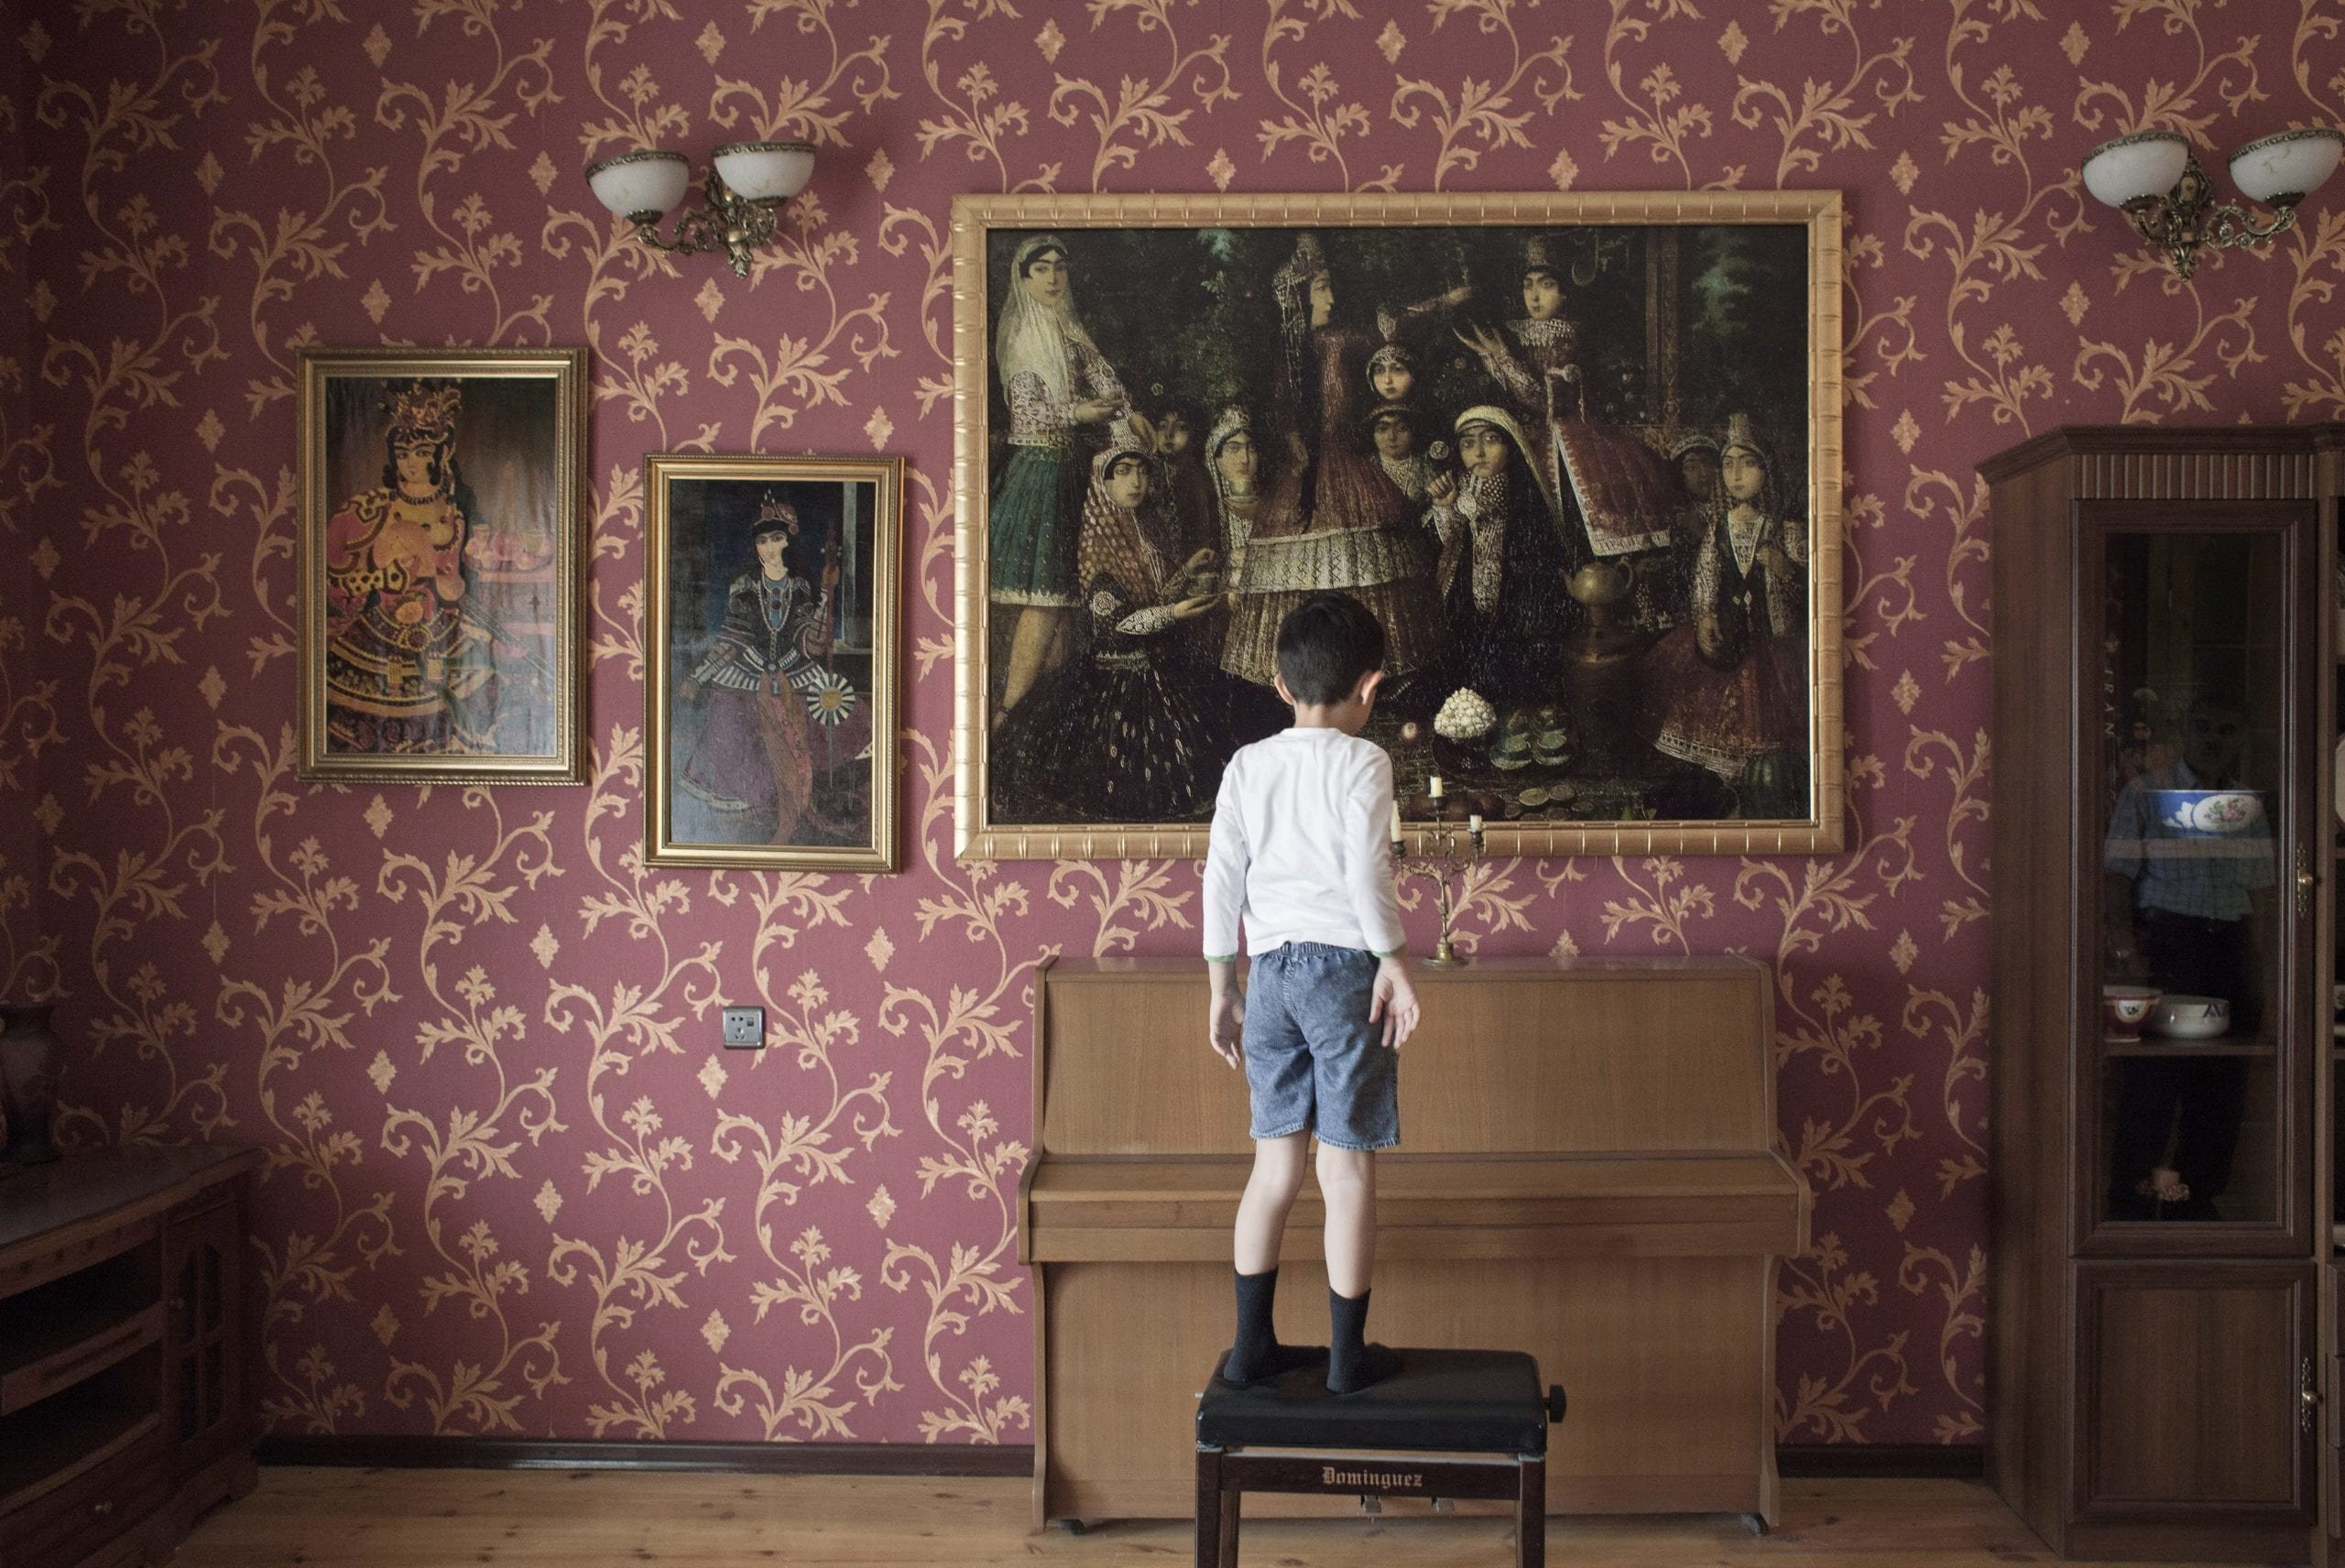 Youngest member of Kadjar family, who claim to be the royal family in Azerbaijan, stares at copies of ancient Iranian paintings in the family house in Baku. Azerbaijan. 2012